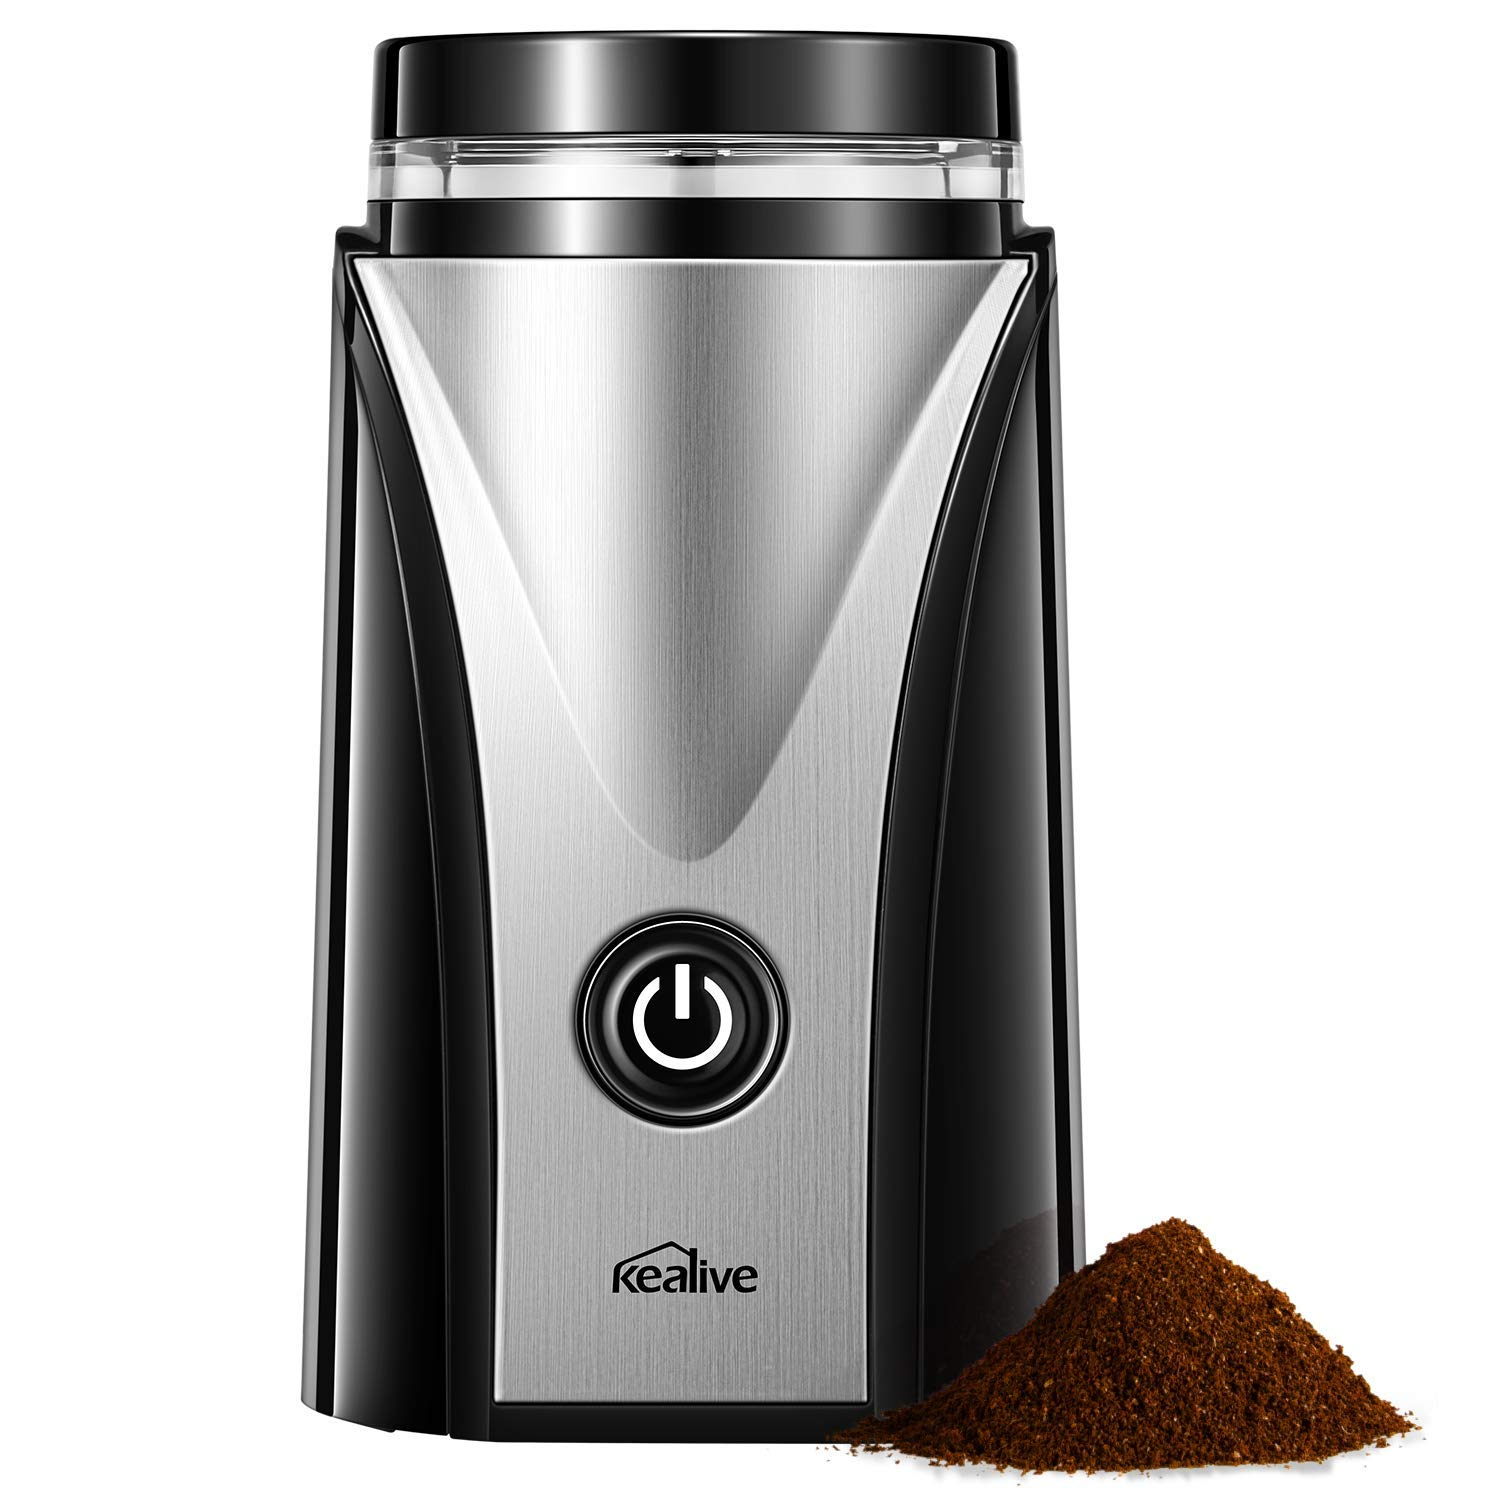 Coffee Grinder, Kealive Electric Coffee Grinder 12 Cup, Coffee Beans Grinder with Stainless Steel Blades for Fast Grinding Coffee Beans, Nuts, Grains, Spices by kealive